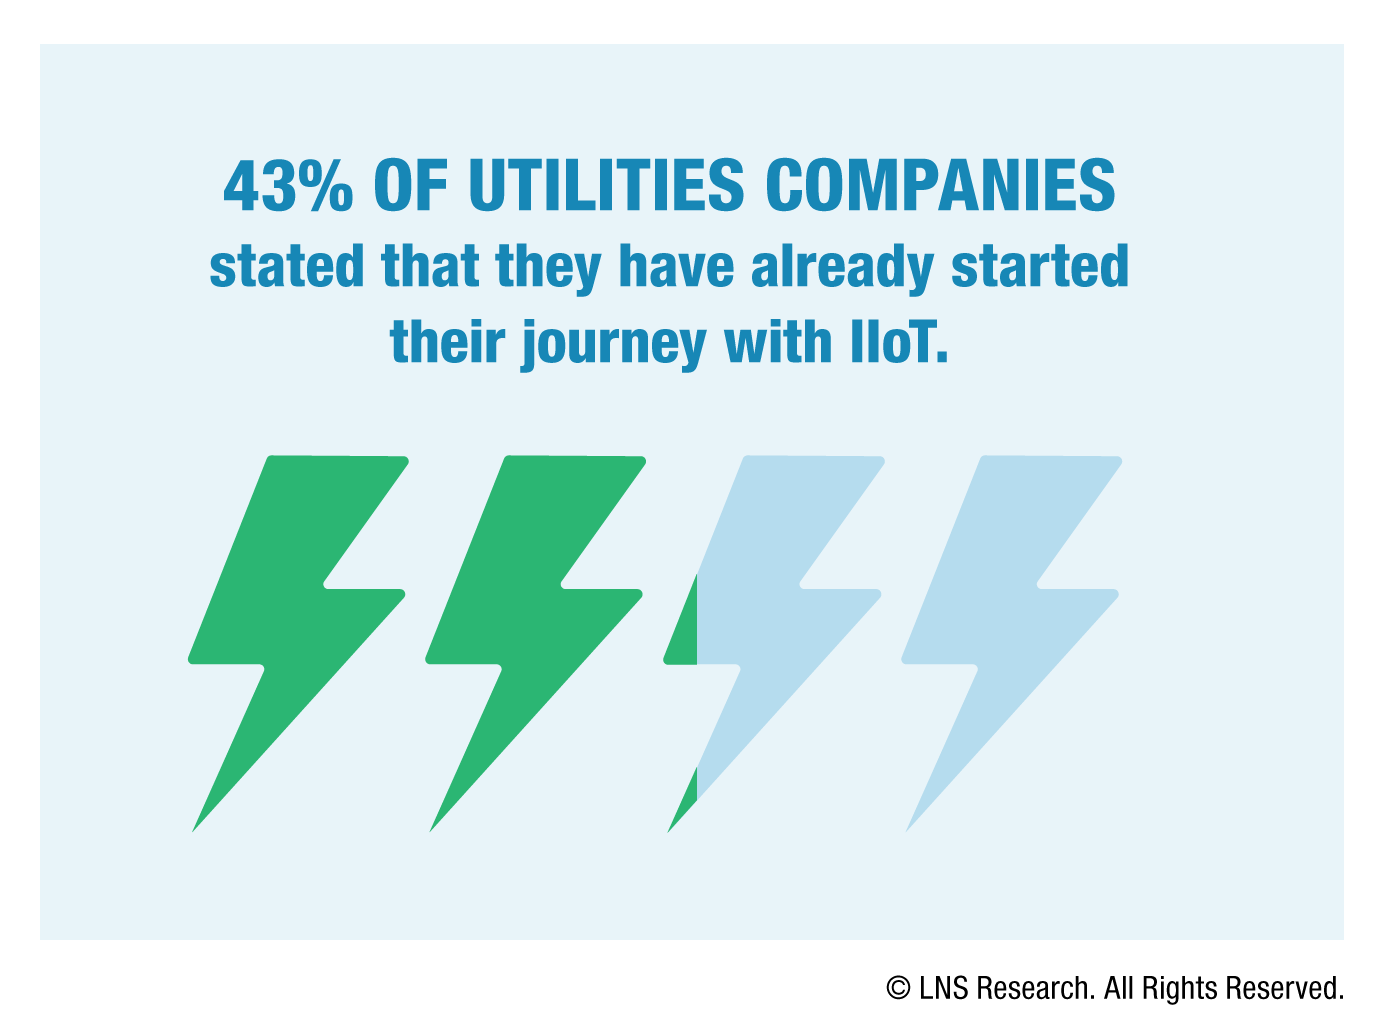 43% of utility companies have already started their journey with IIoT